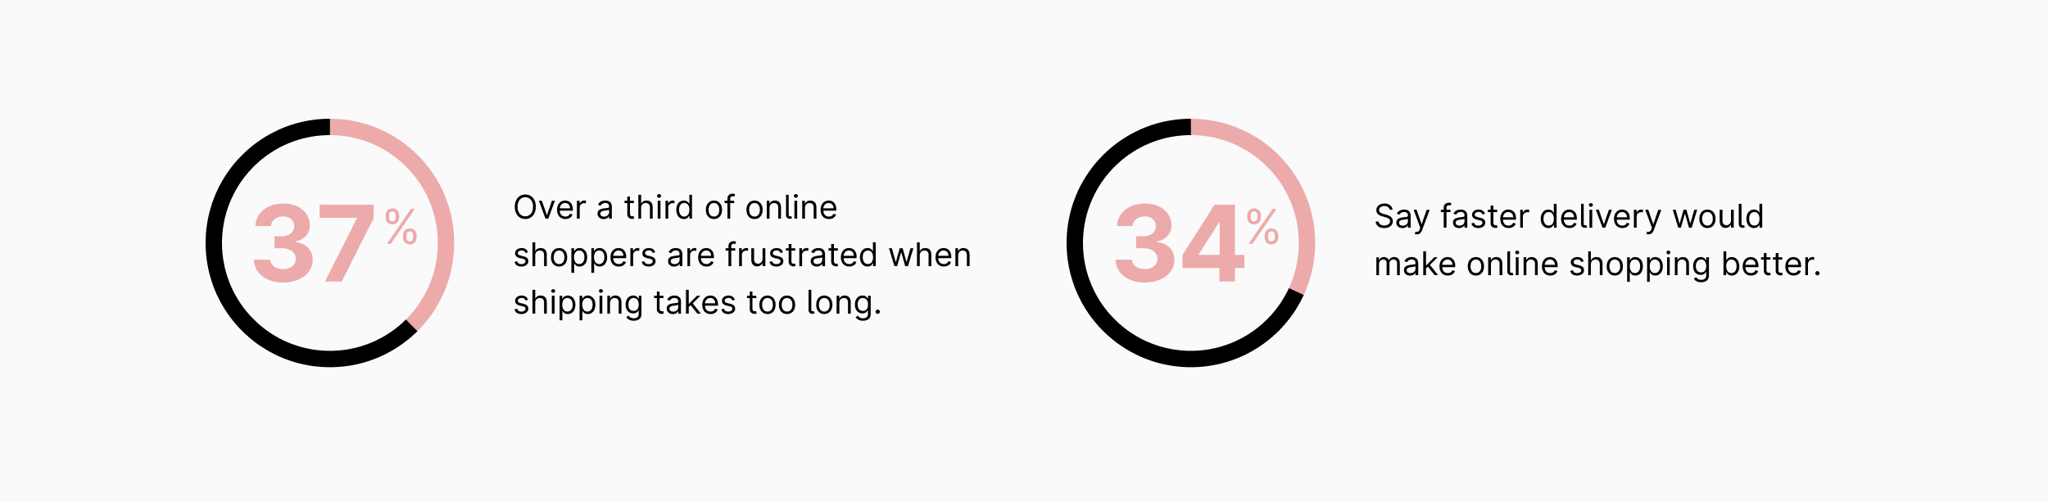 A graphic showing the number of online consumers who prefer faster shipping